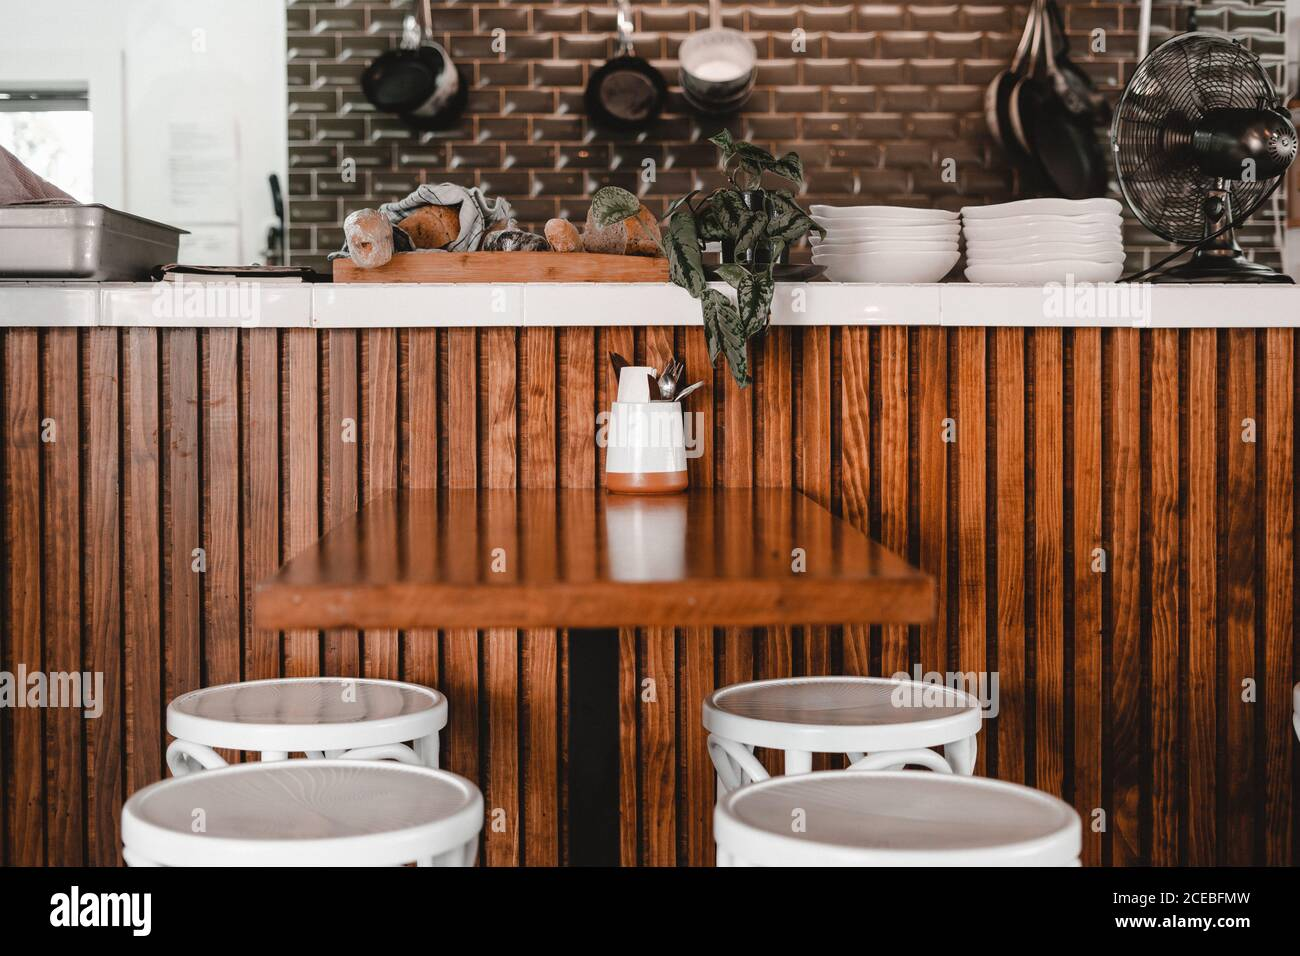 Wooden Bar Stools High Resolution Stock Photography And Images Alamy